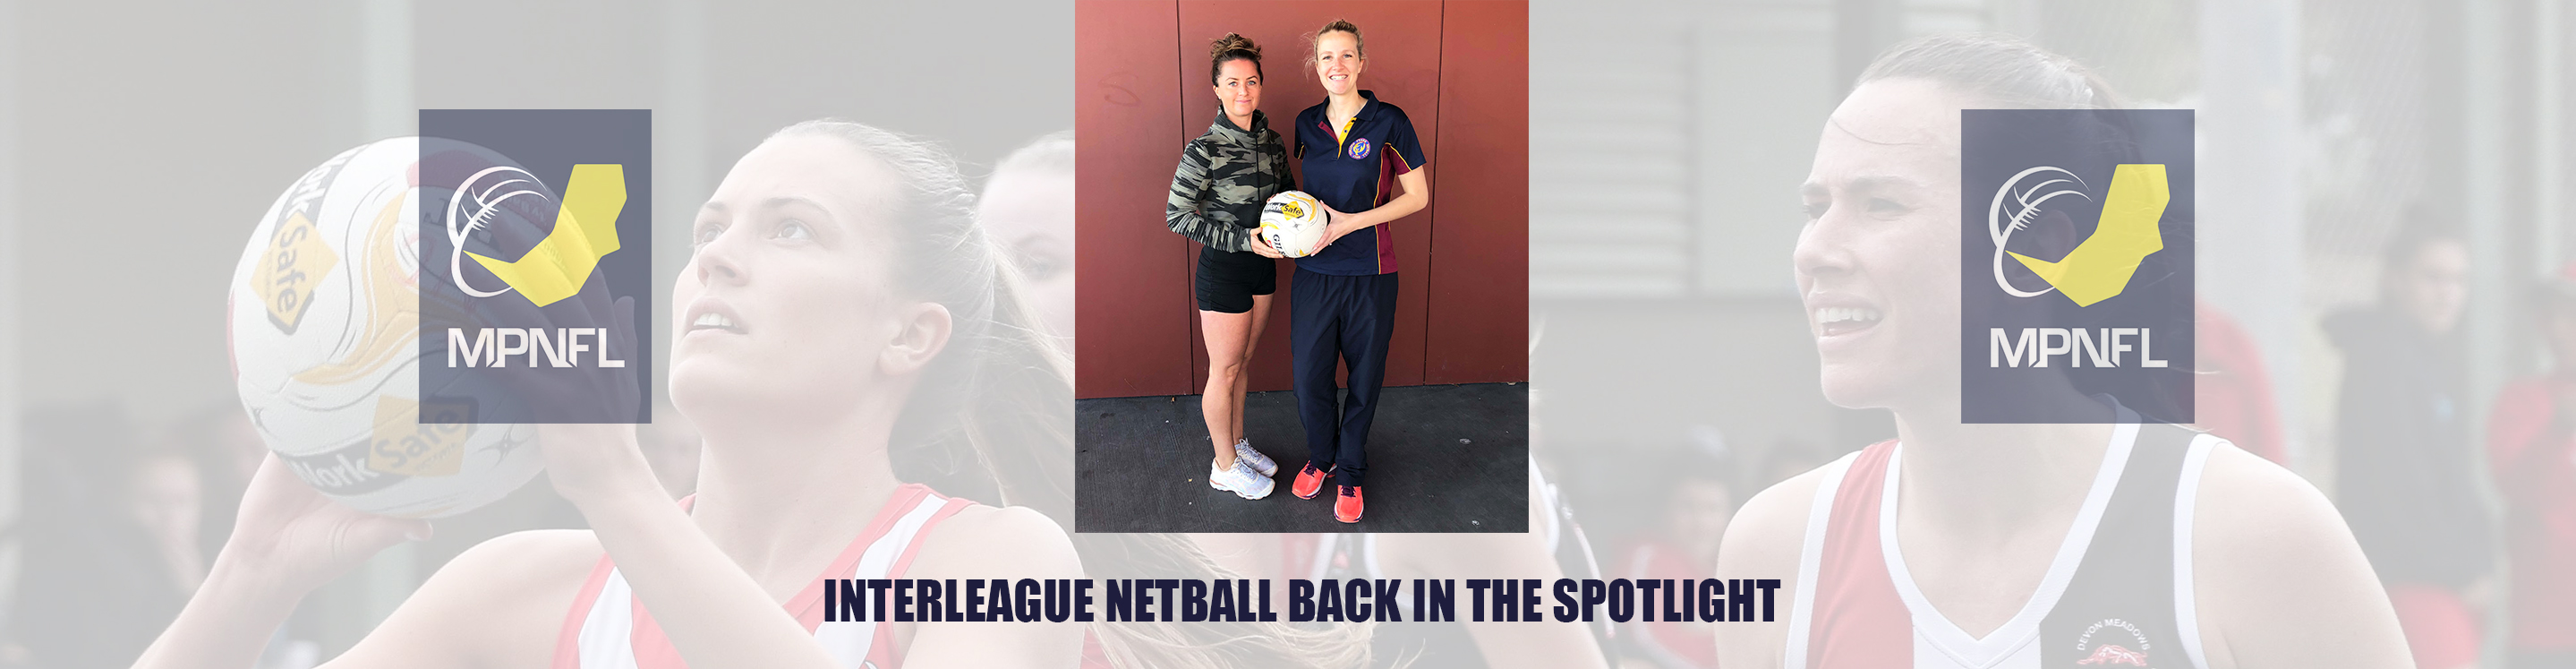 MPNFL netball is back on the big stage - AFL South East